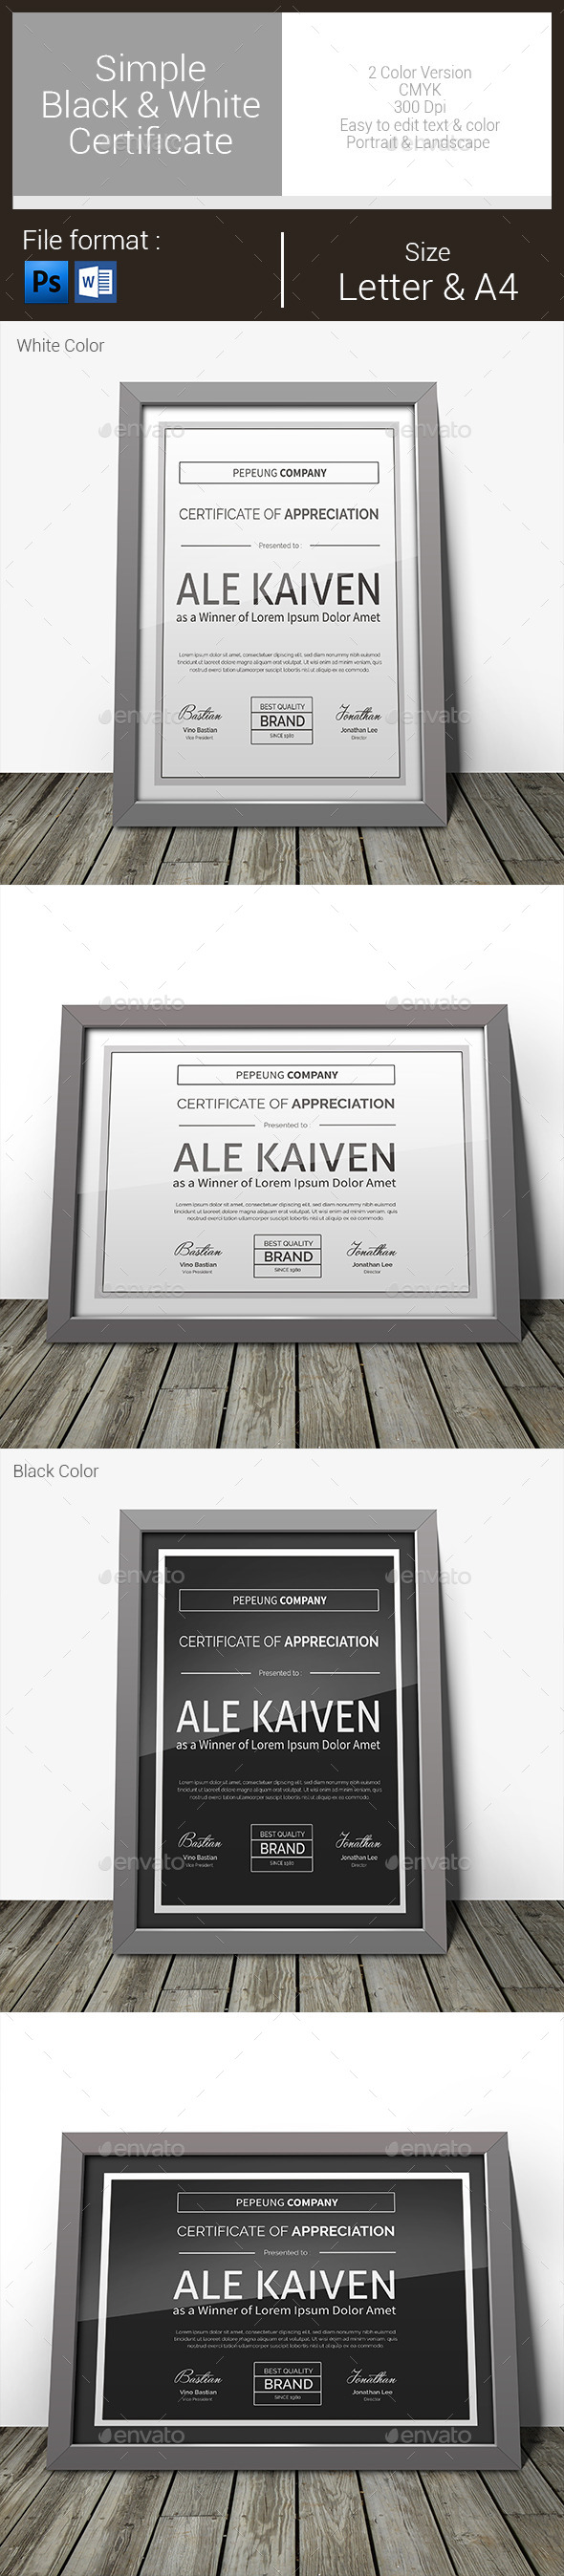 GraphicRiver Simple Black & White Certificate 11011366